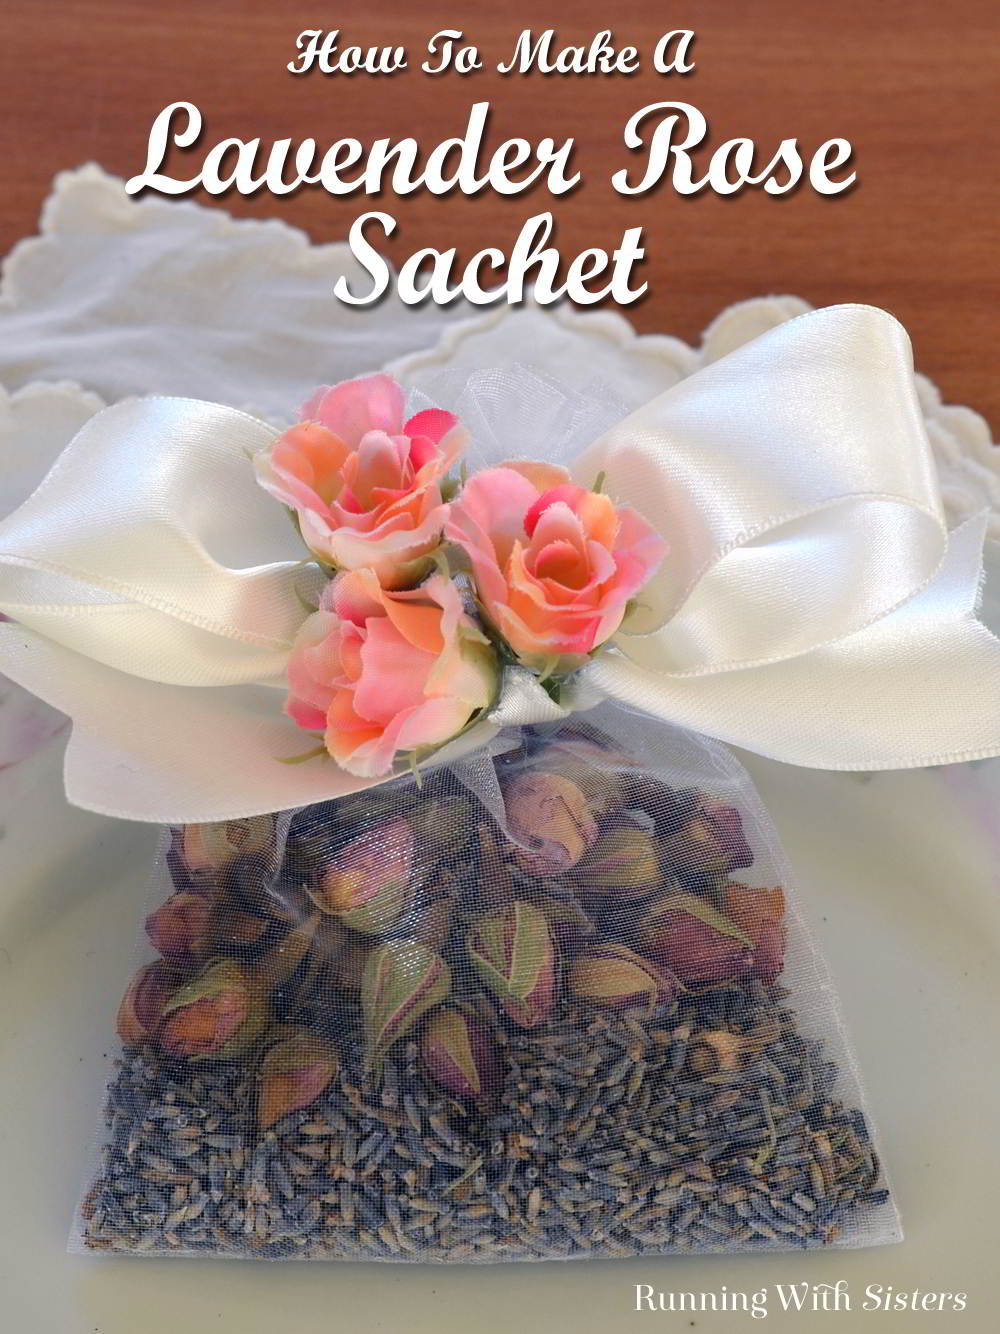 This Easy Lavender Rose Sachet is so fast to make! Just fill an organdy favor bag with dried lavender buds and top with pretty dried rose buds.